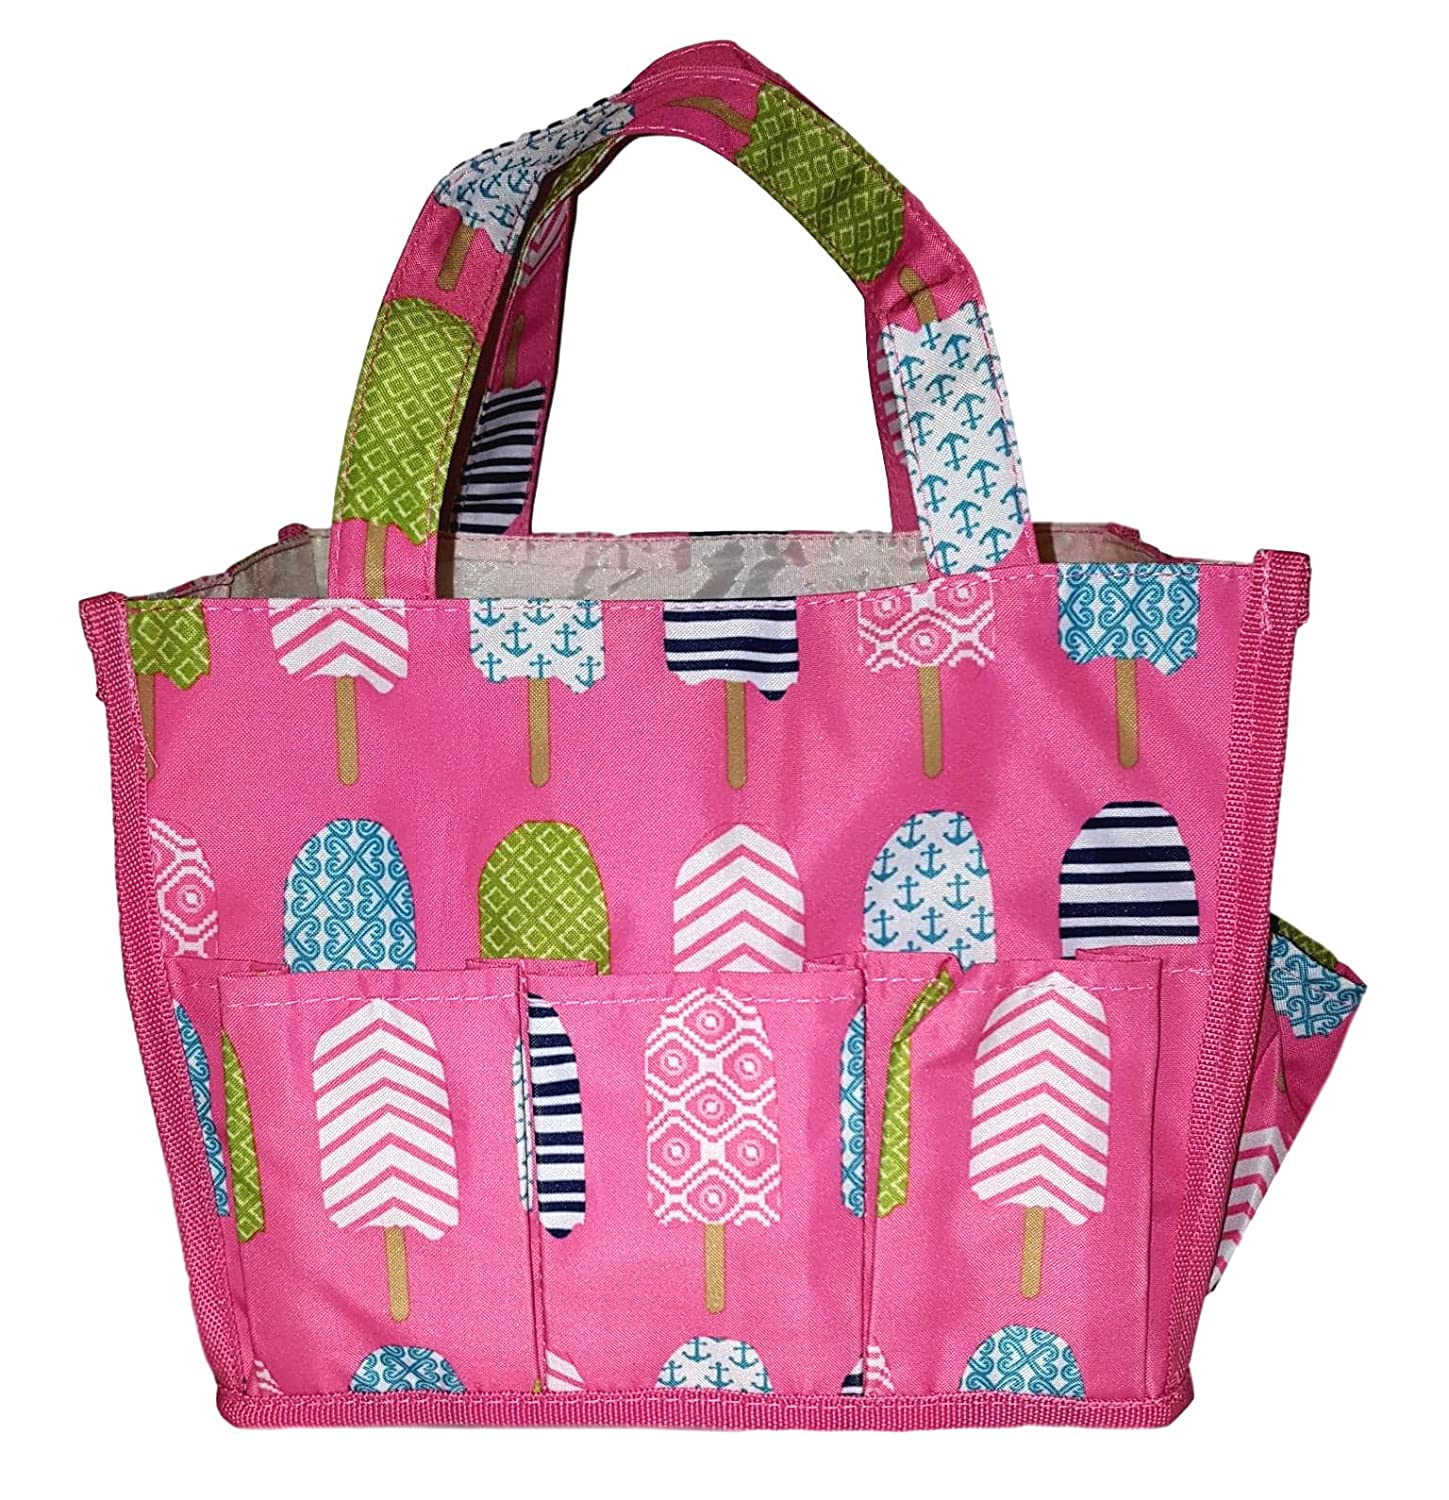 12 Outside Pockets Small Fashion Organizing Tote Bag Personalization Available